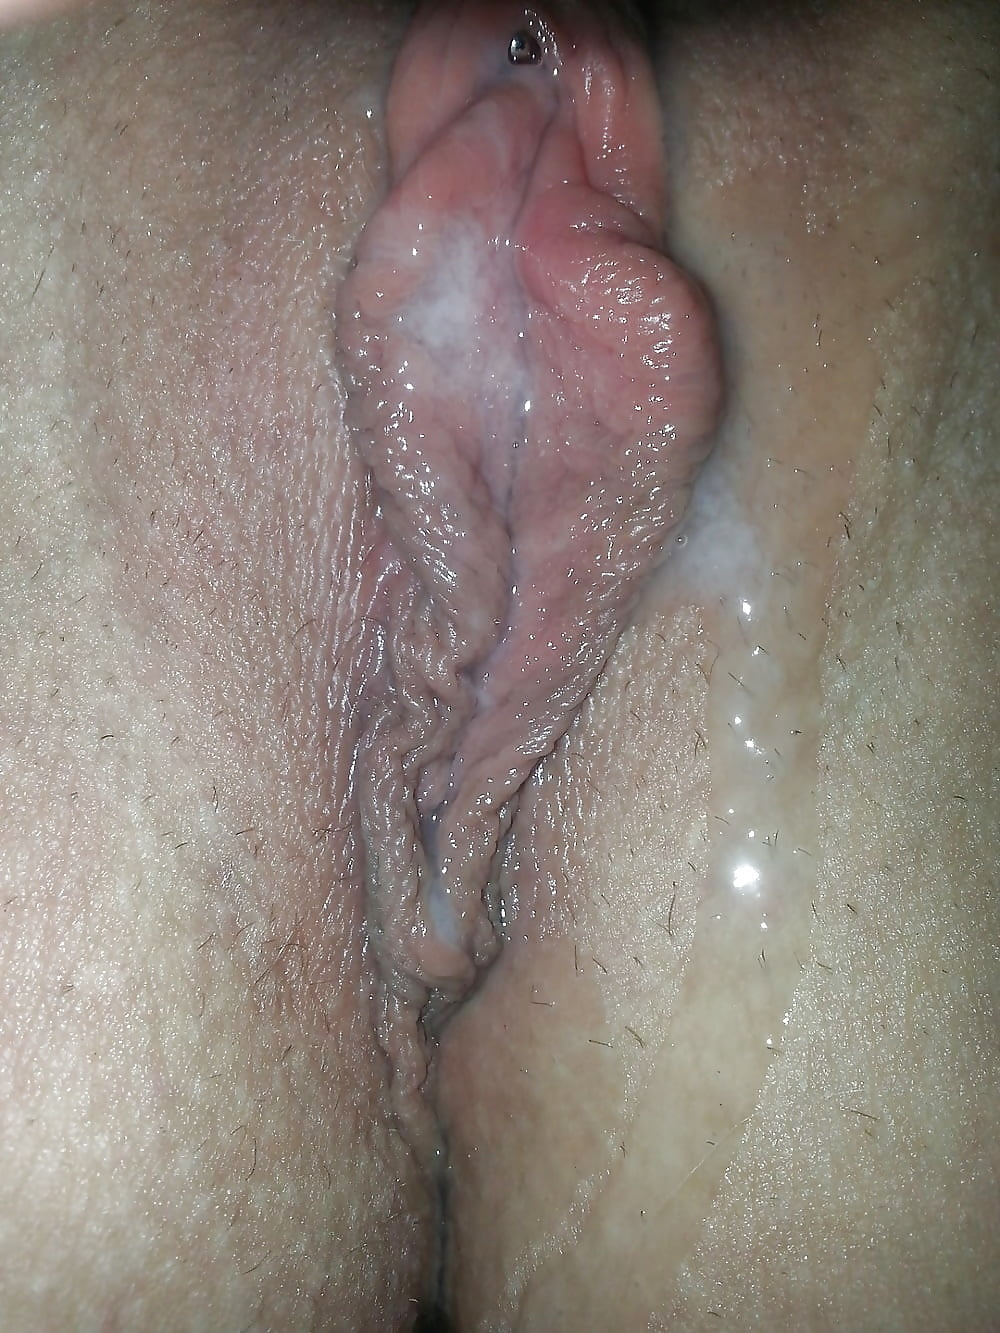 Cumming All Over My Hand Using My Wand, Creamy Pussy